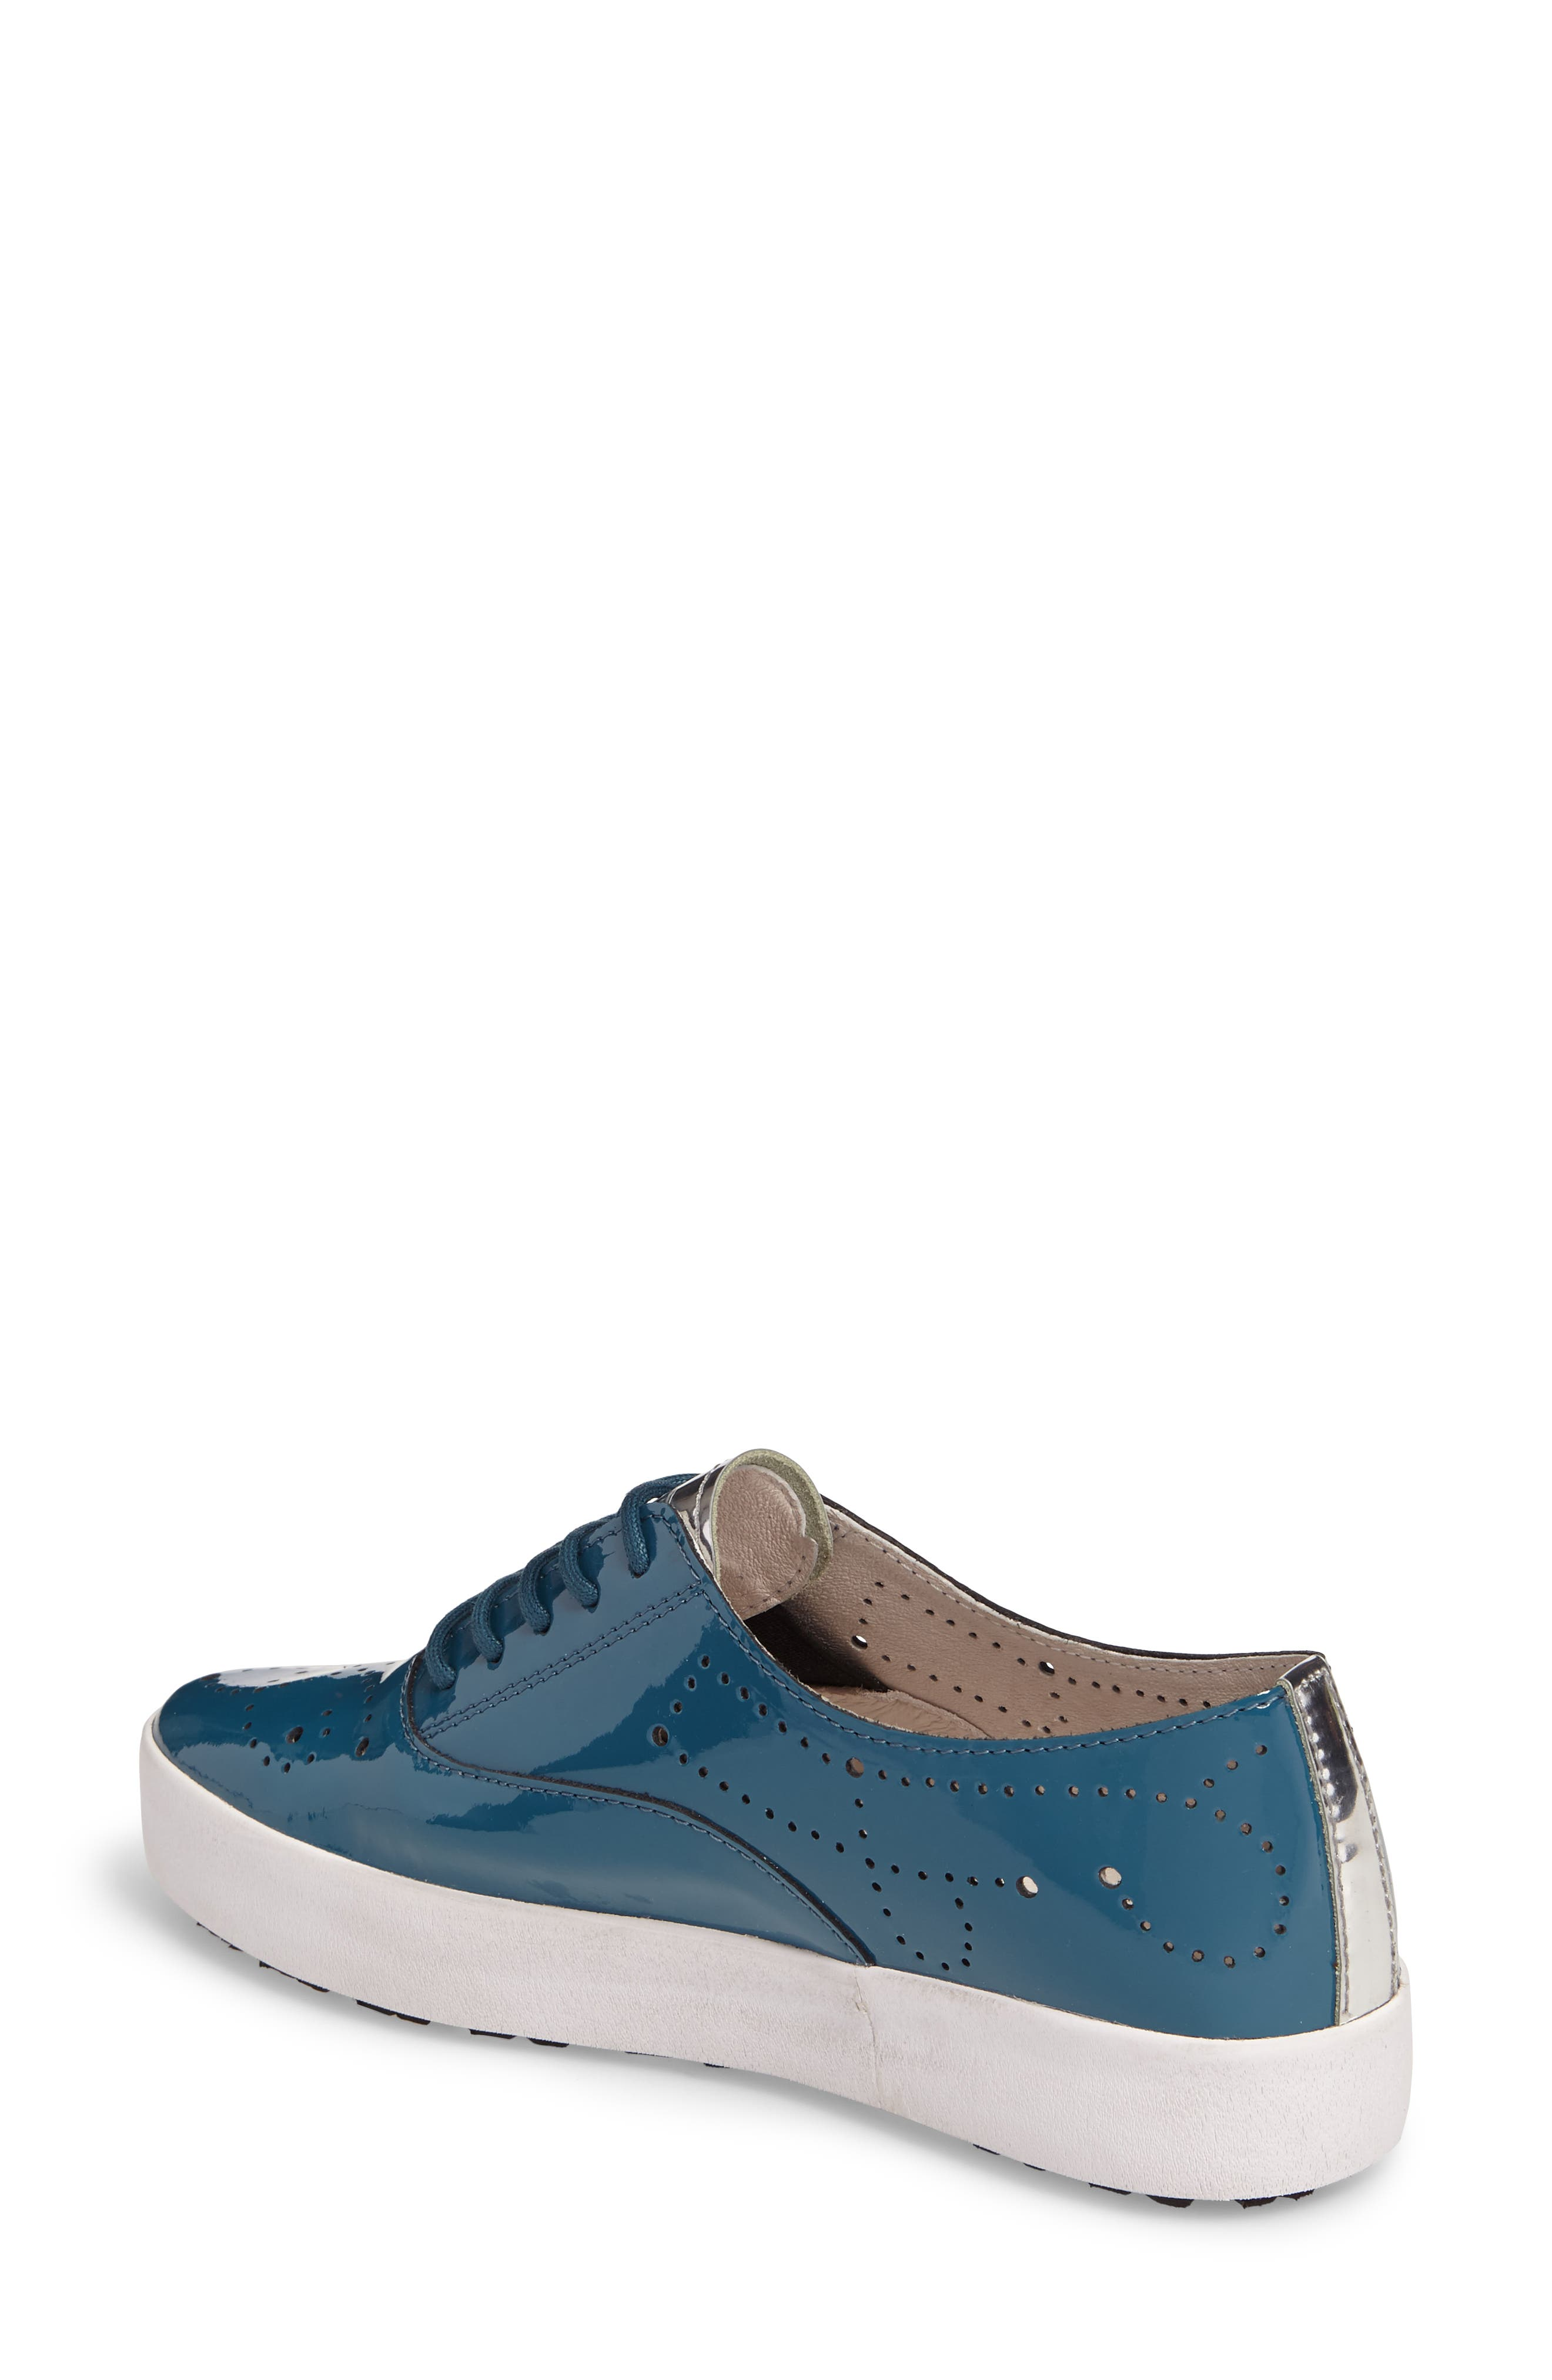 NL41 Sneaker,                             Alternate thumbnail 2, color,                             Turquoise Patent Leather